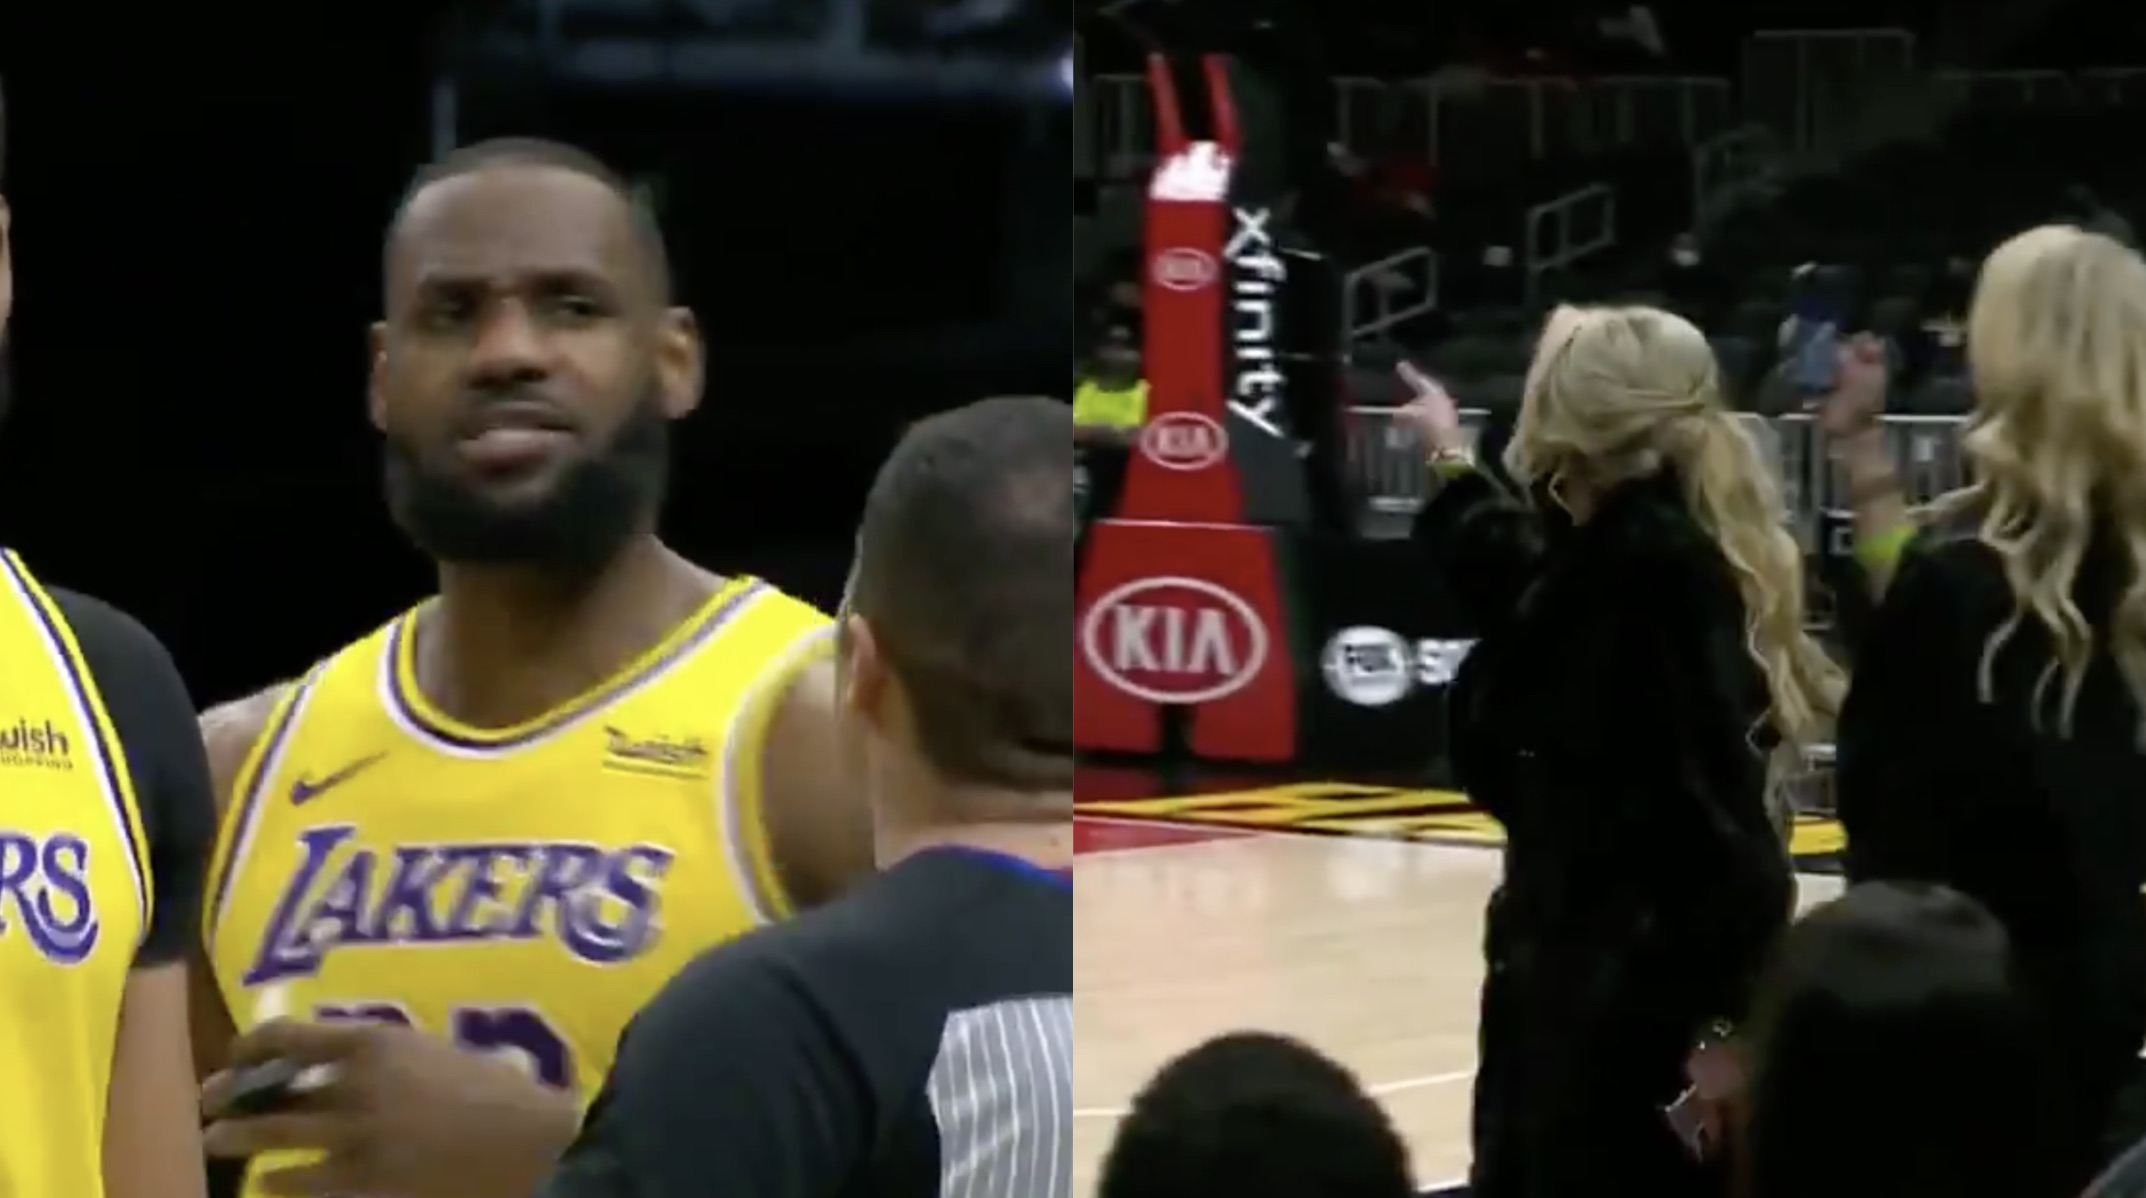 Fan ejected after altercation with LeBron James